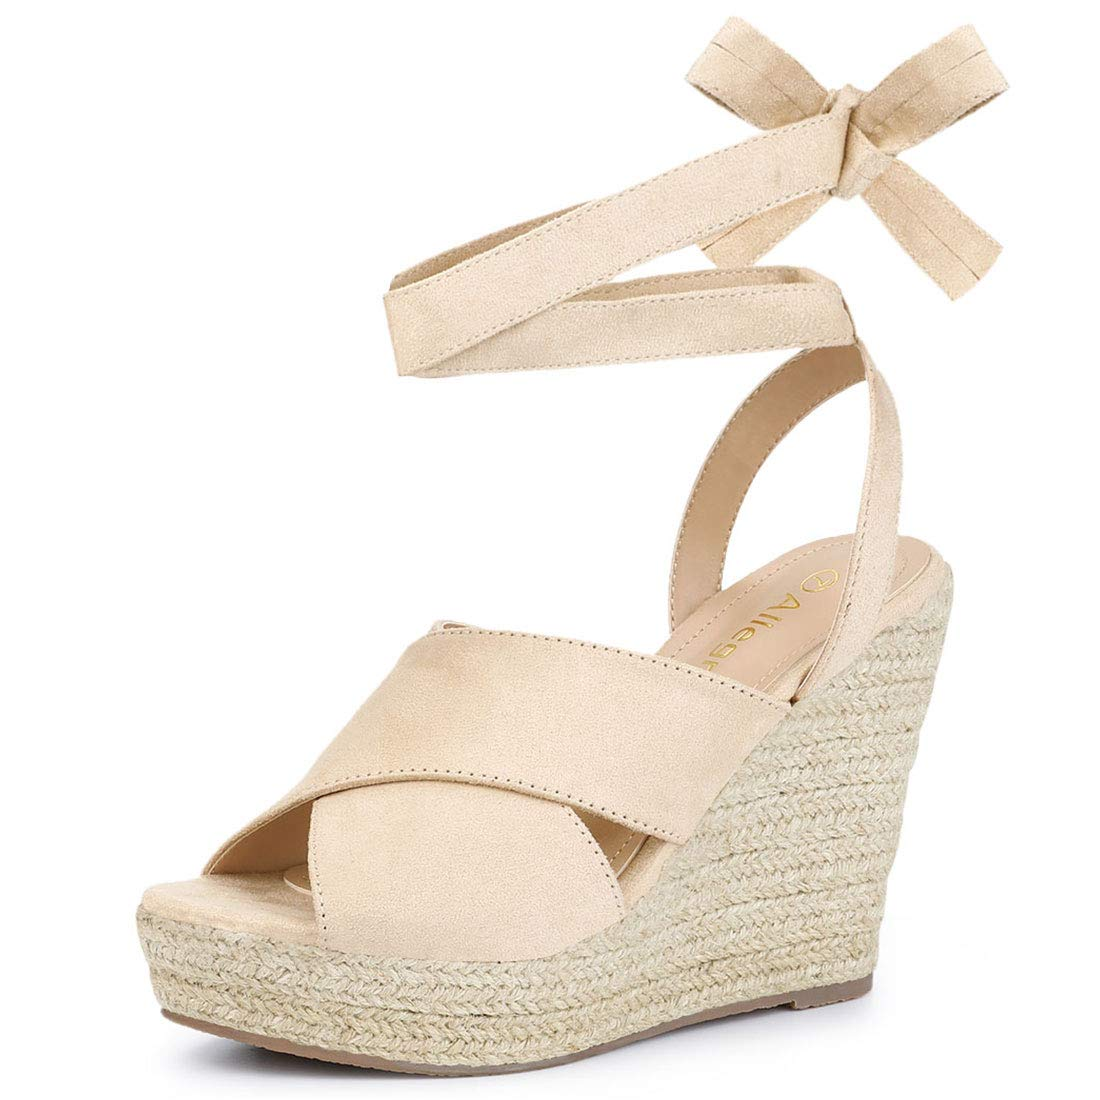 f291735ede0 Allegra K Women's Espadrille Crisscross Platform Wedges Heel Lace Up Sandals